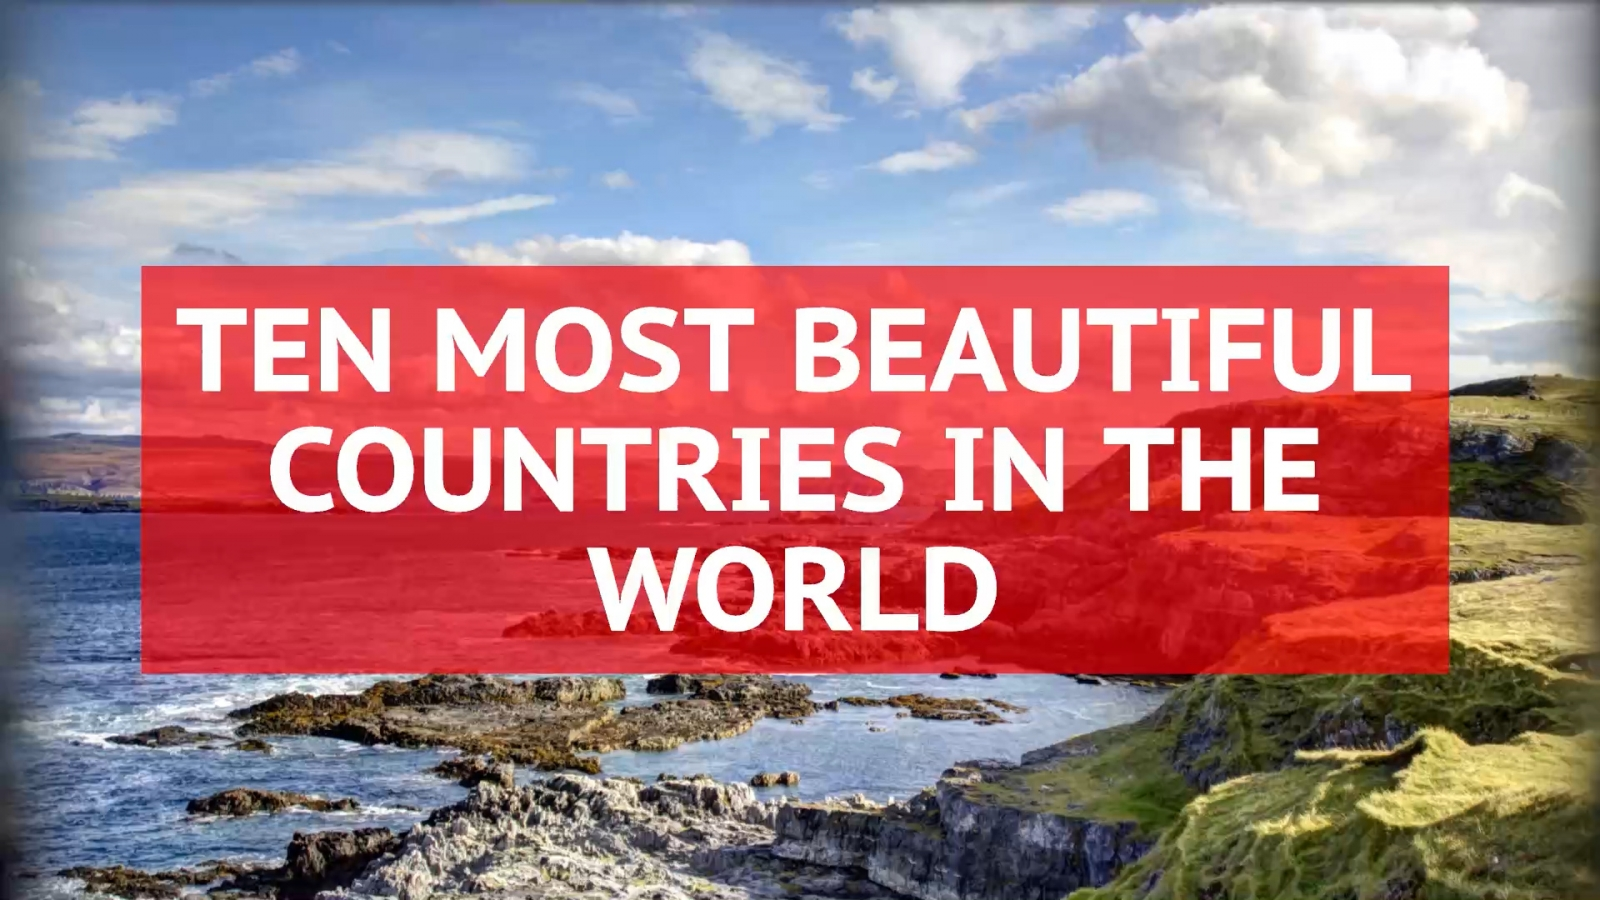 these are the most beautiful countries in the world